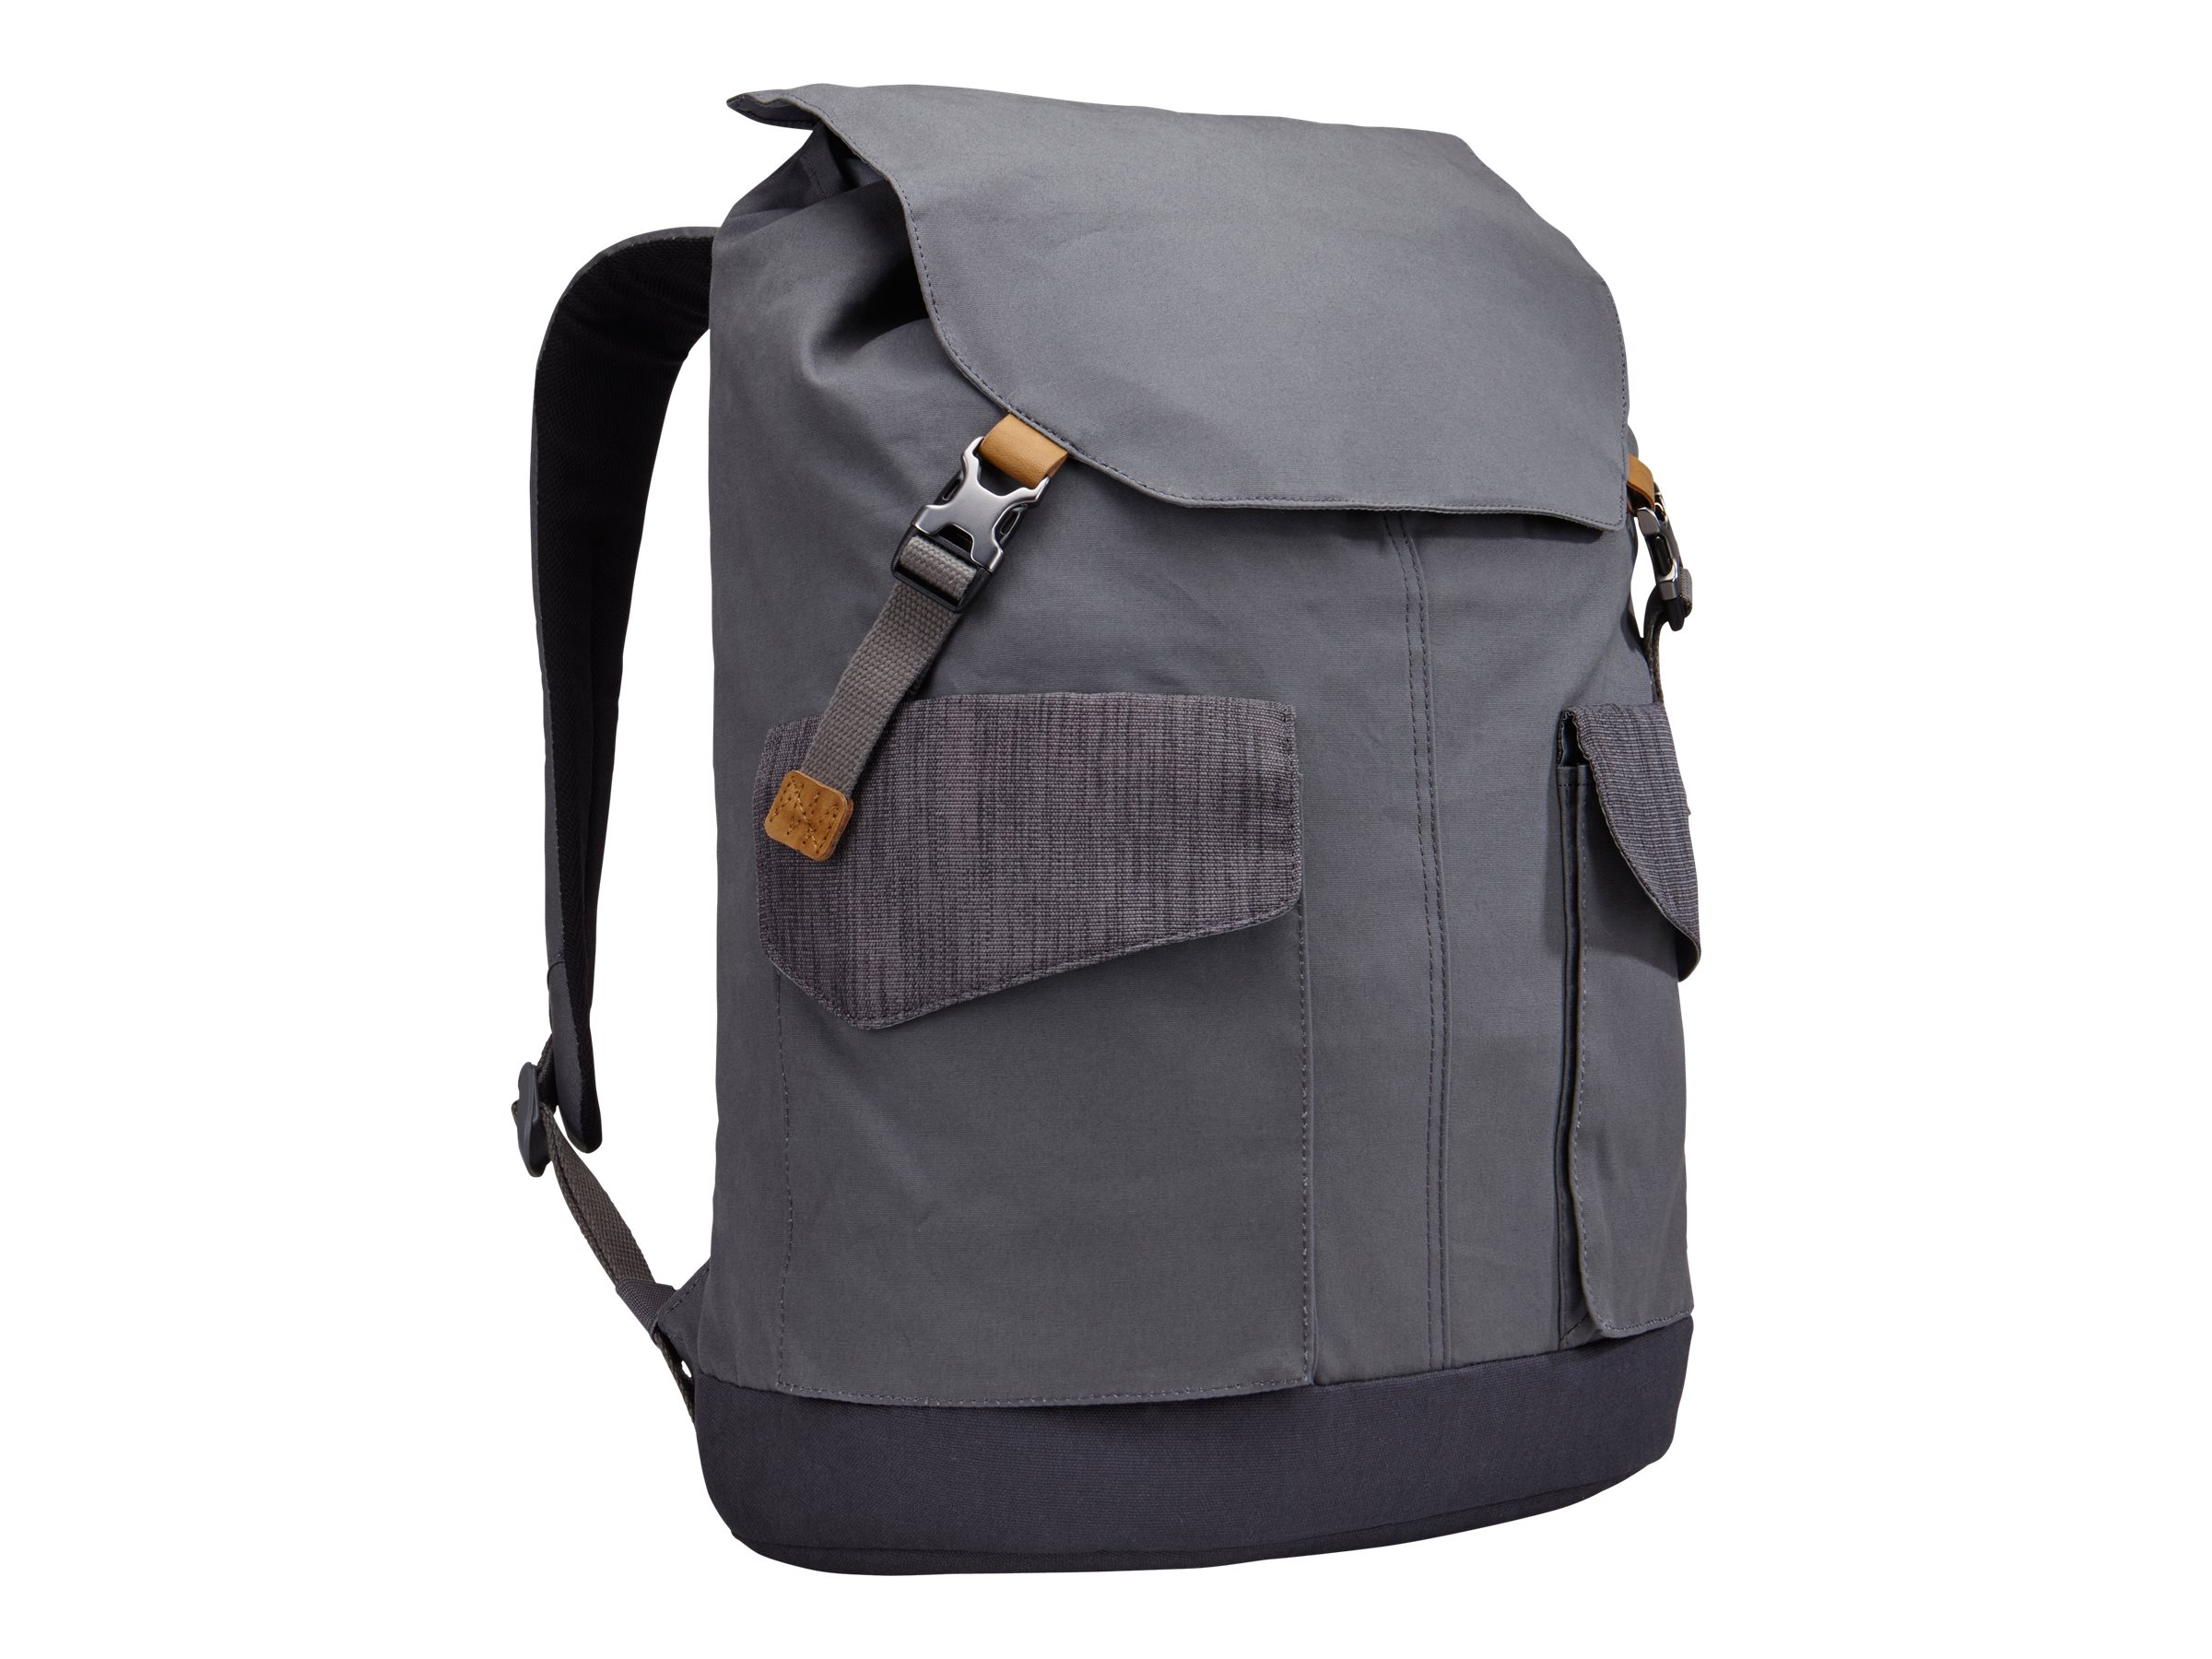 Case Logic LoDo Large Backpack, Graphite, LODP115GRAPHITE